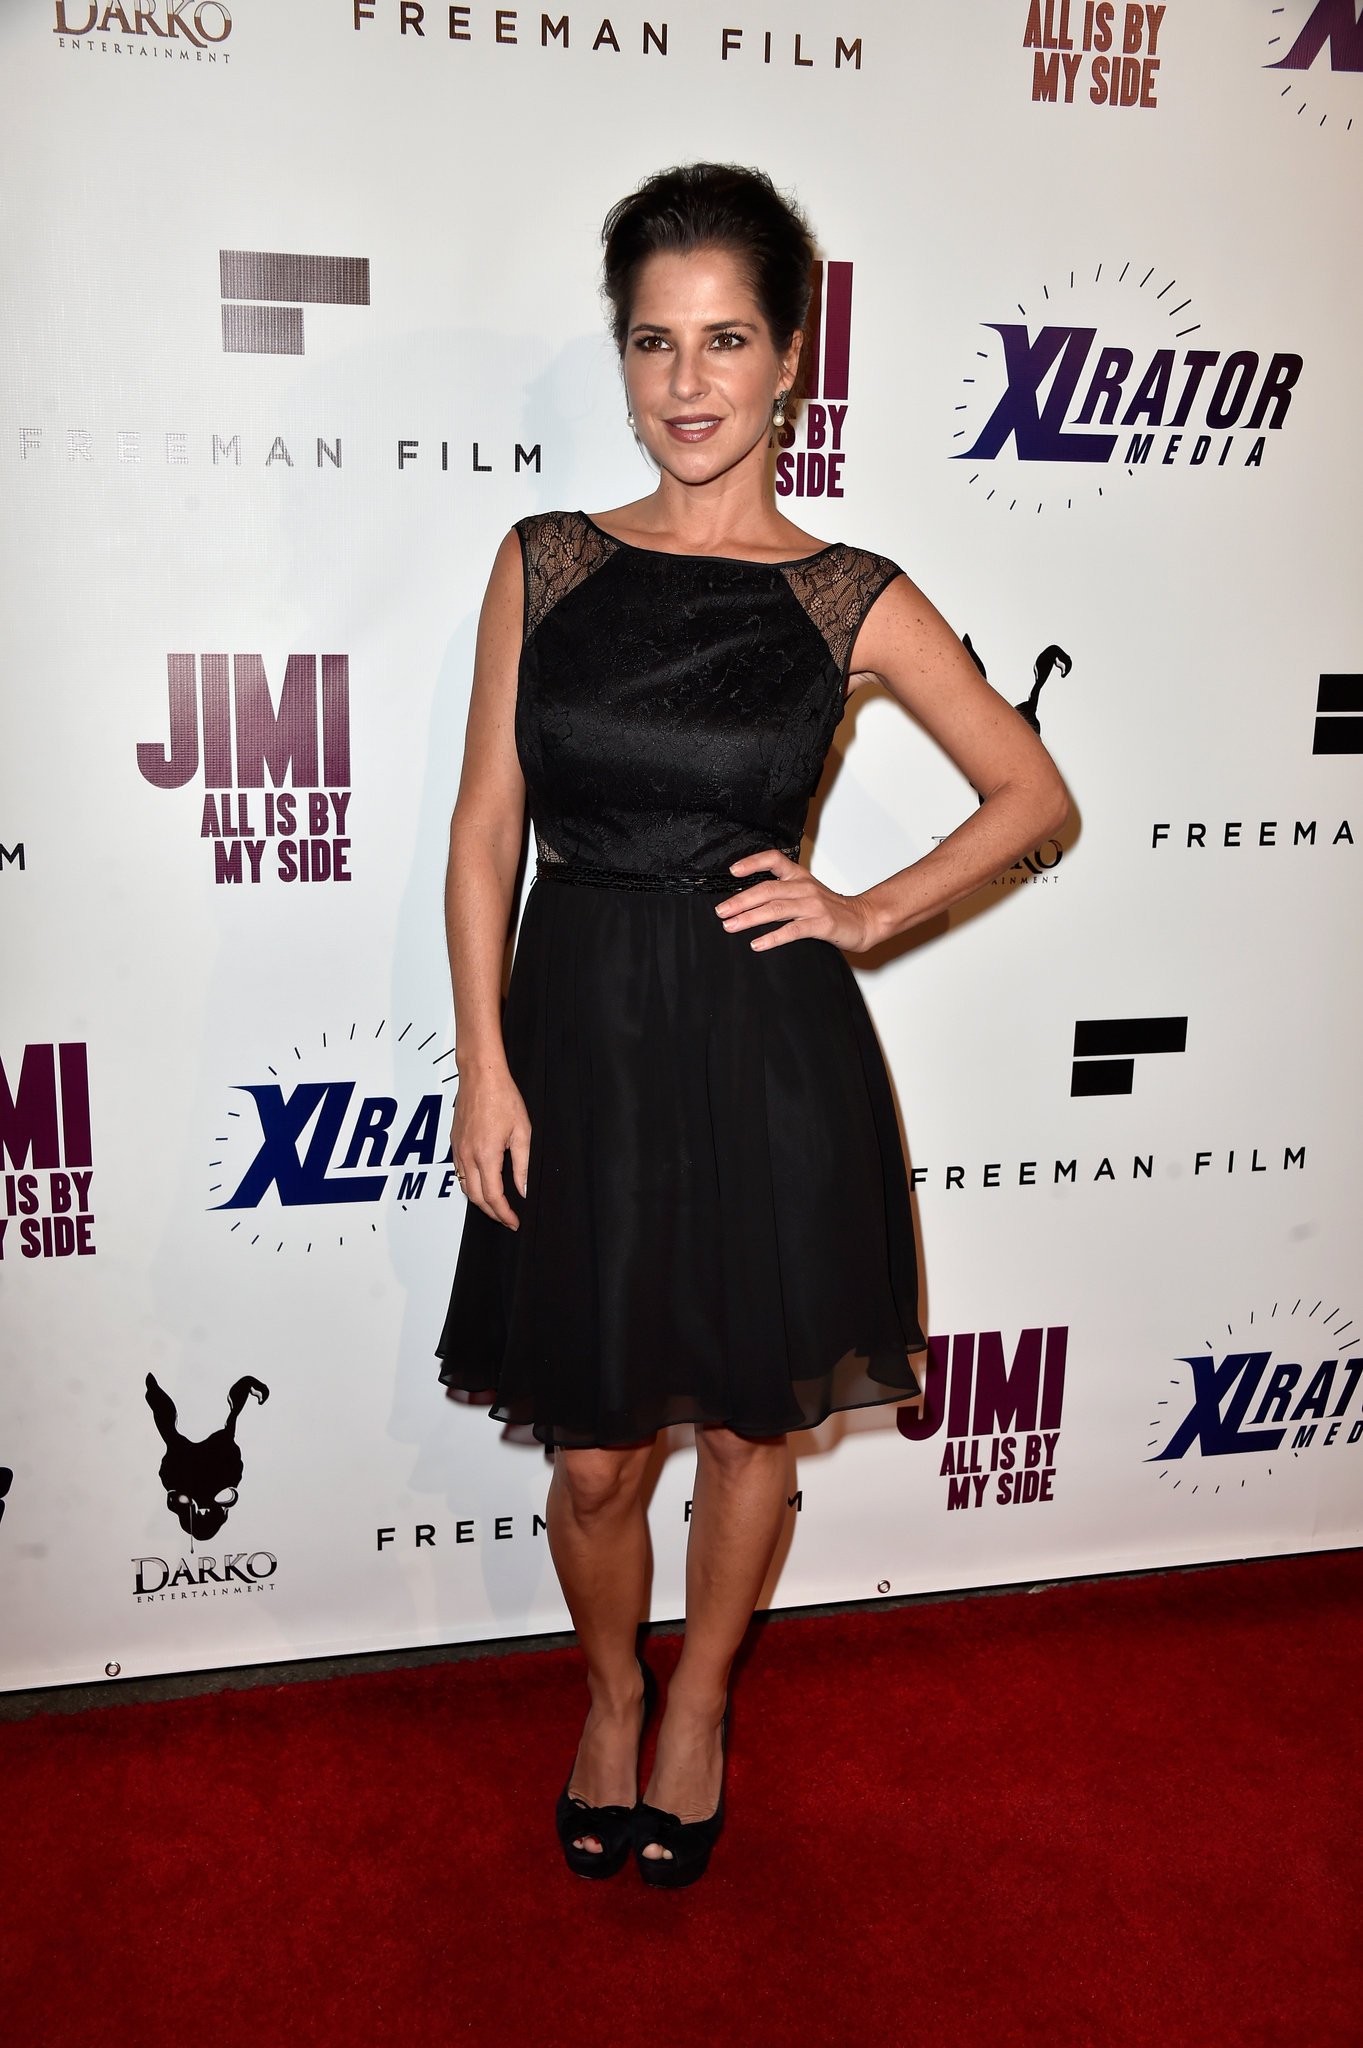 Kelly Monaco at an event for Jimi: All Is by My Side (2013)